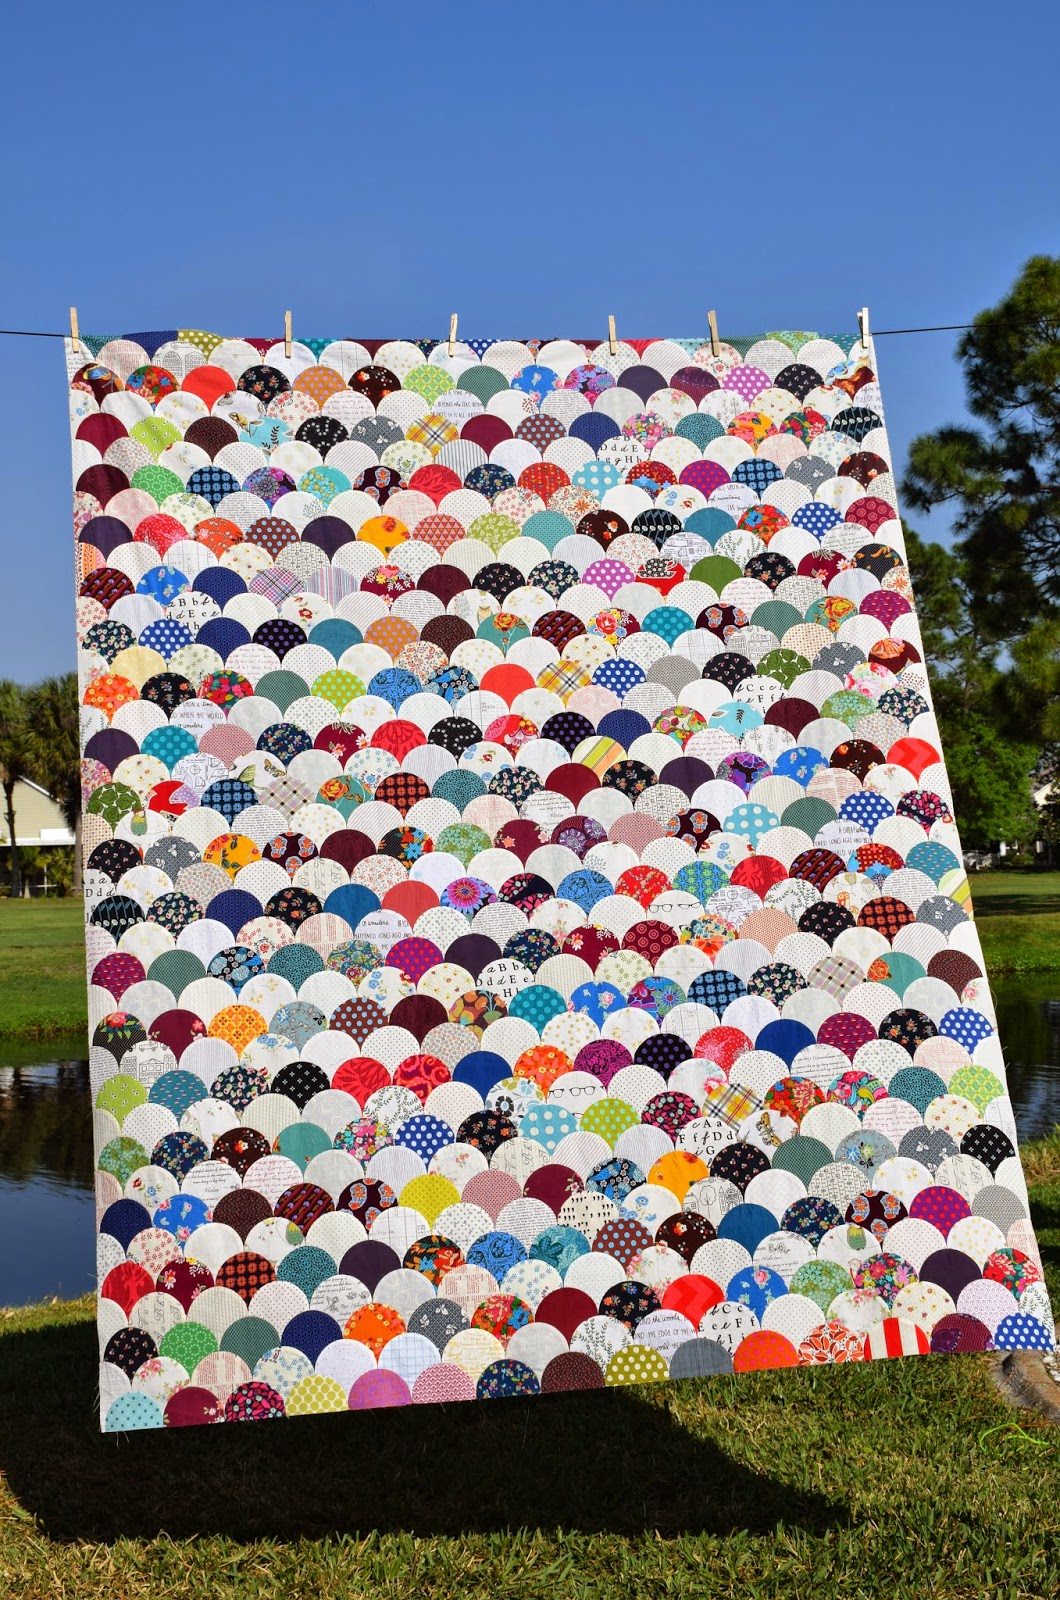 Clambake clamshell quilt